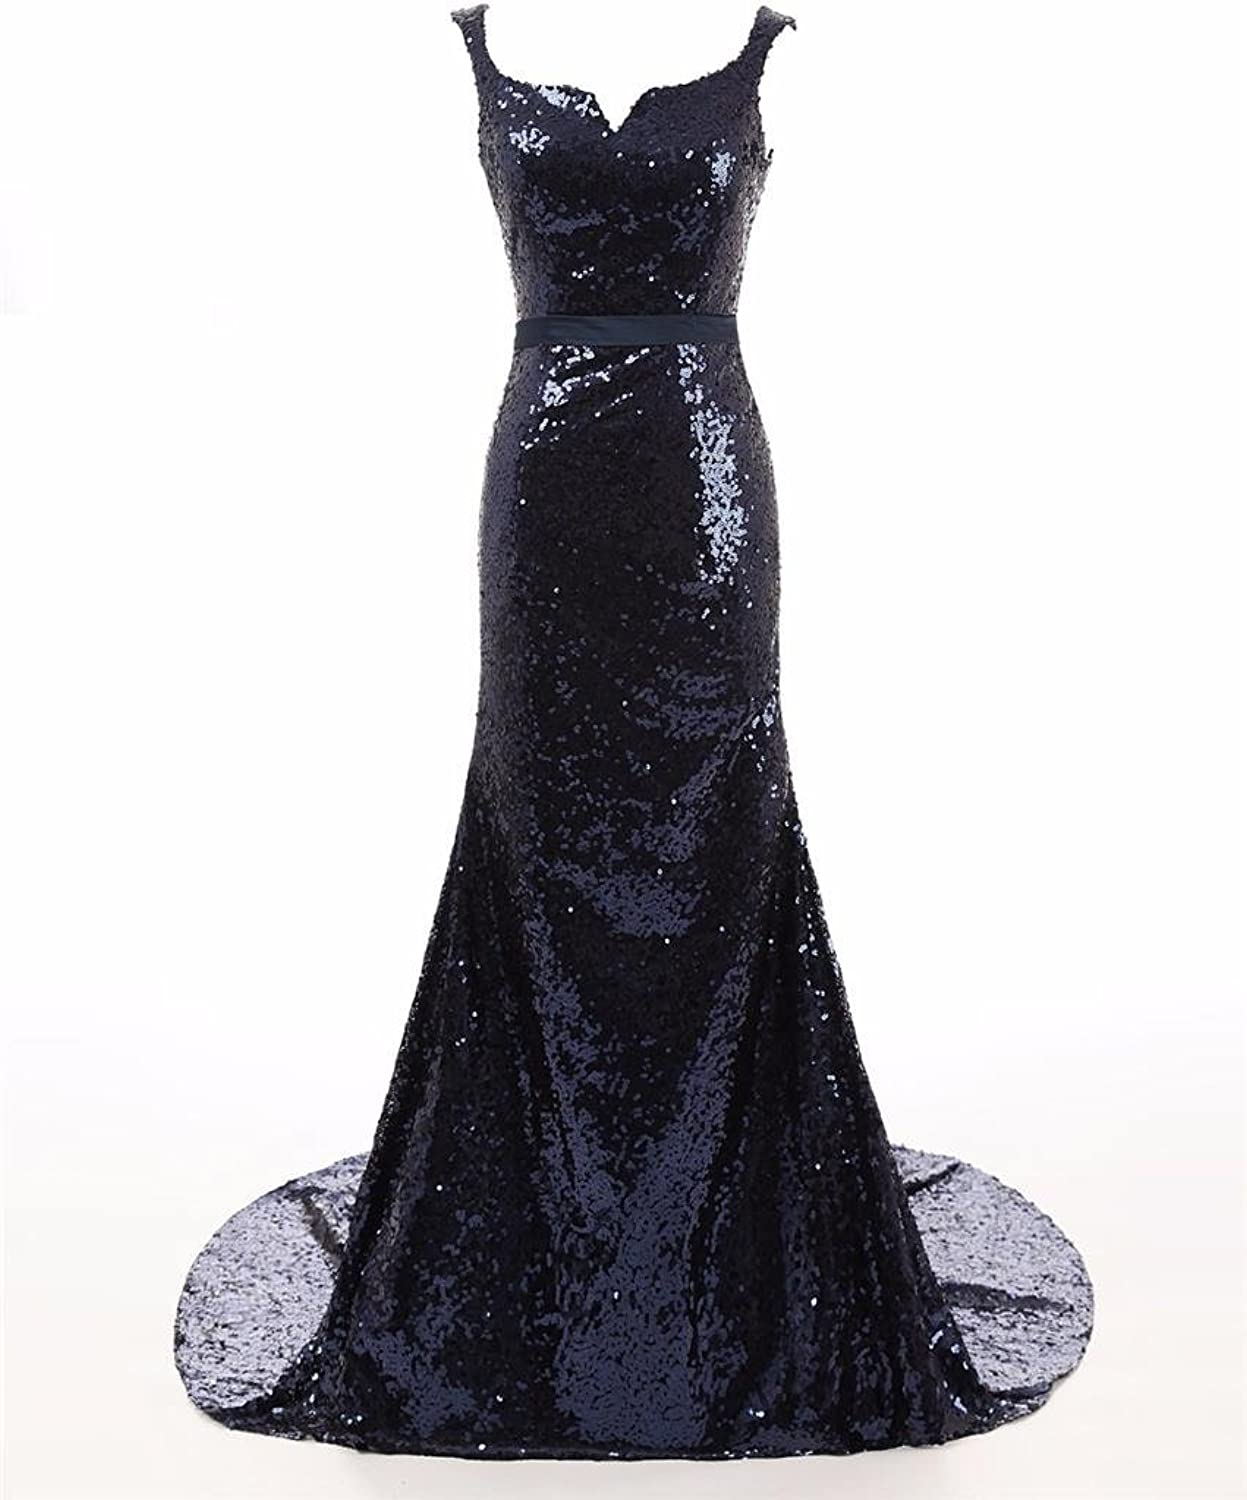 Changjie Women's Sequin Formal Evening Gown Party Dresses With Sweep Train CJ113